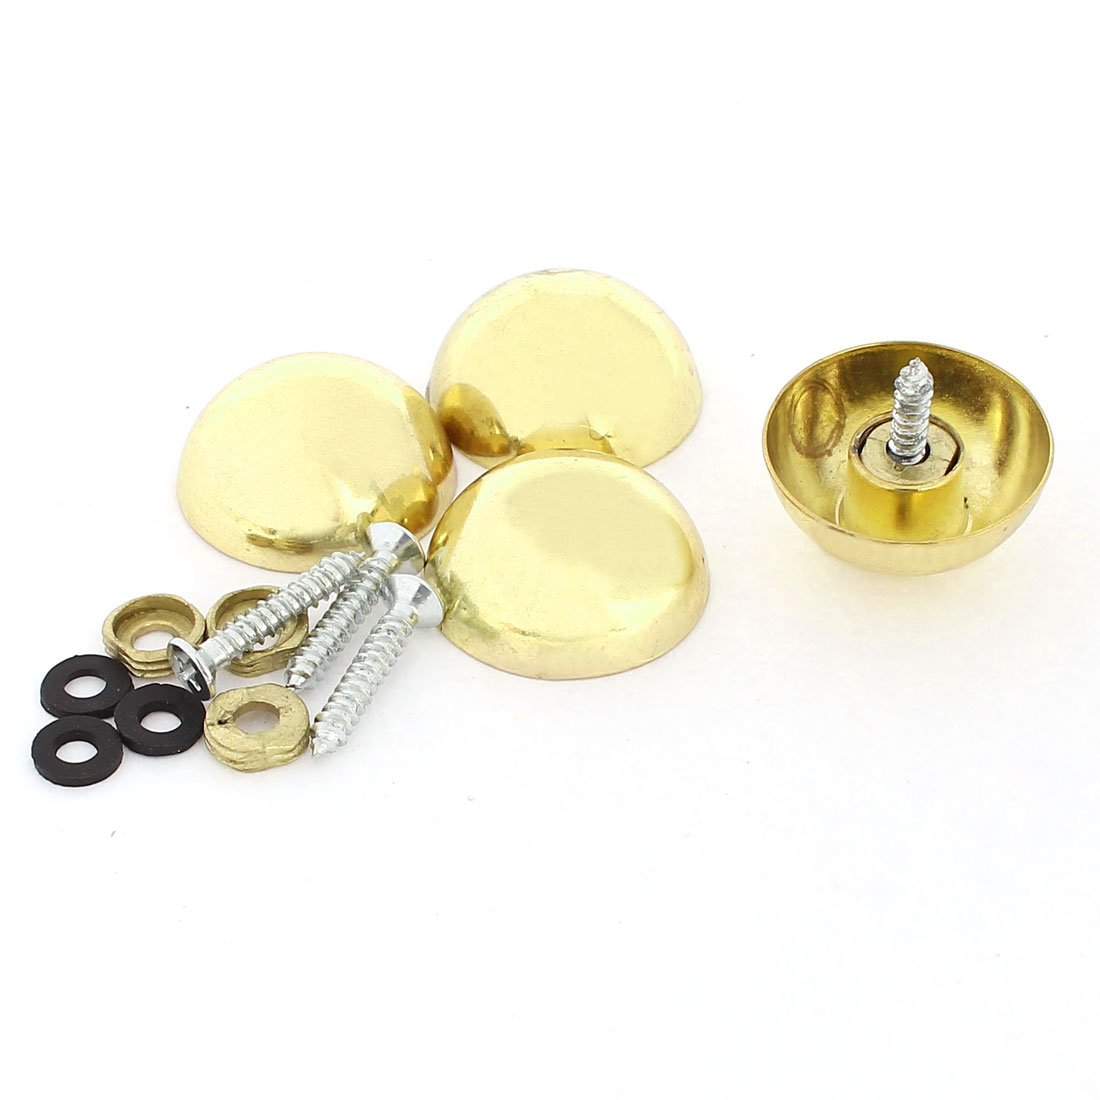 4 Pcs 27mm Dia 16mm Height Zinc Alloy Dome Screw Mirror Nail Caps Gold Tone